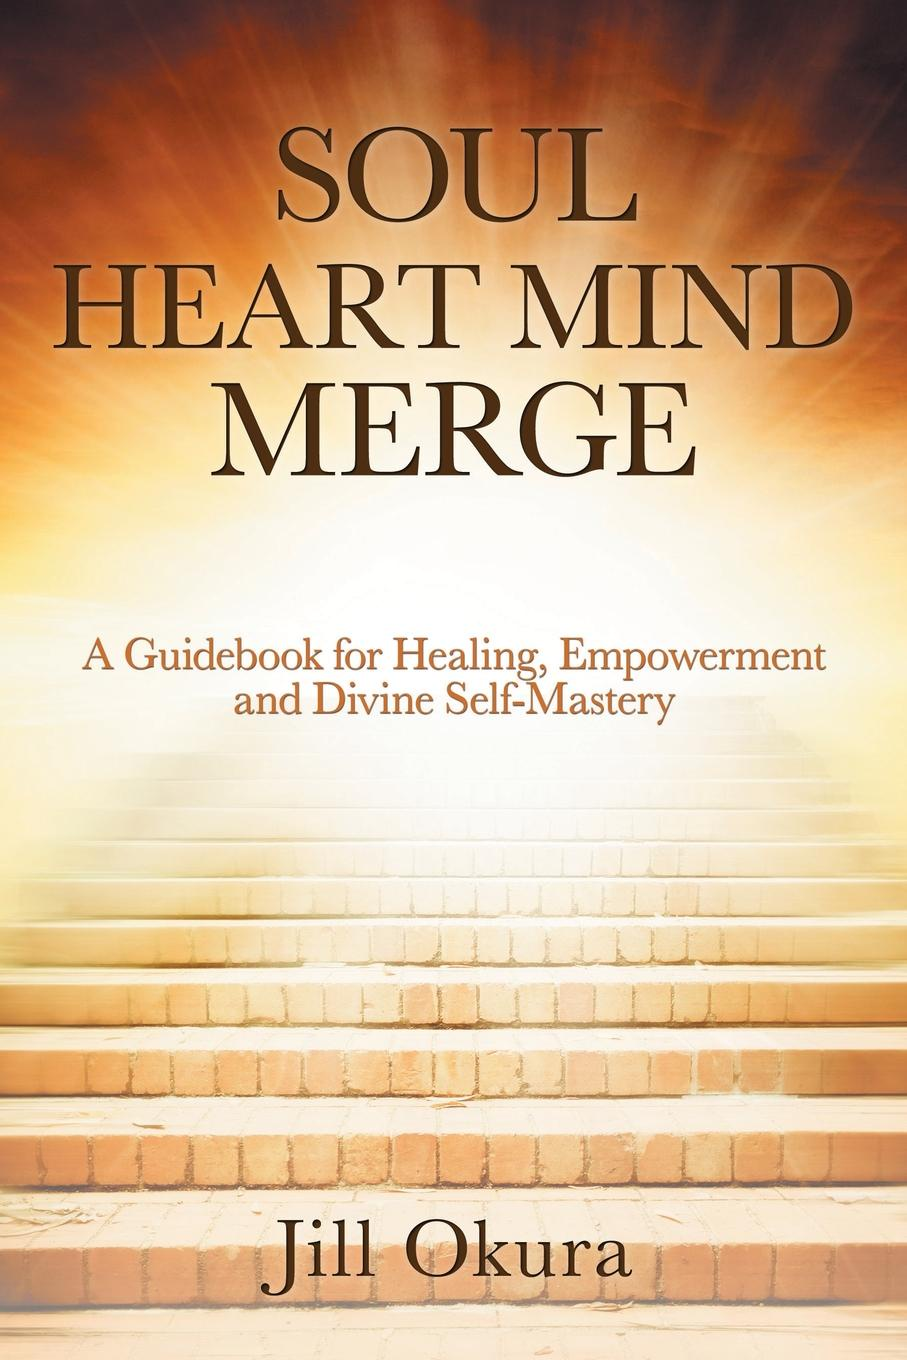 Jill Okura Soul Heart Mind Merge. A Guidebook for Healing, Empowerment and Divine Self-Mastery charity amy murphy soul time therapy a time to be still and connect with soul